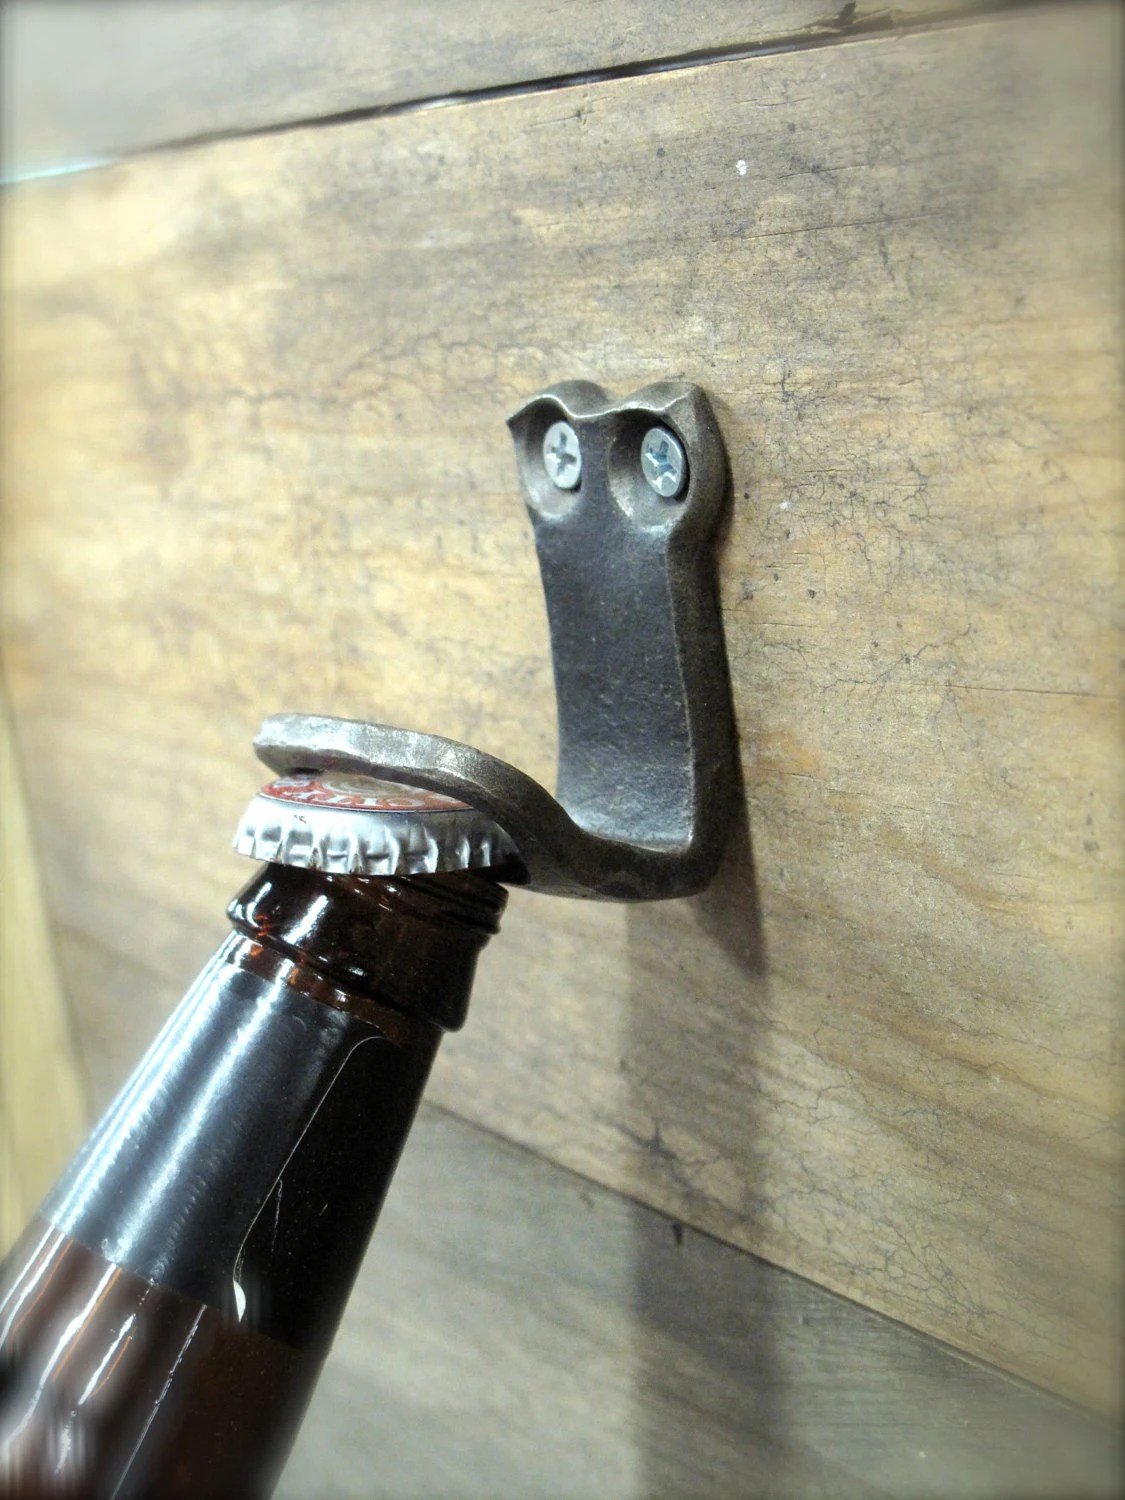 Handmade Fireplace Tools Bottle Opener Blacksmith Hand Forged Wall Mounted Wrought